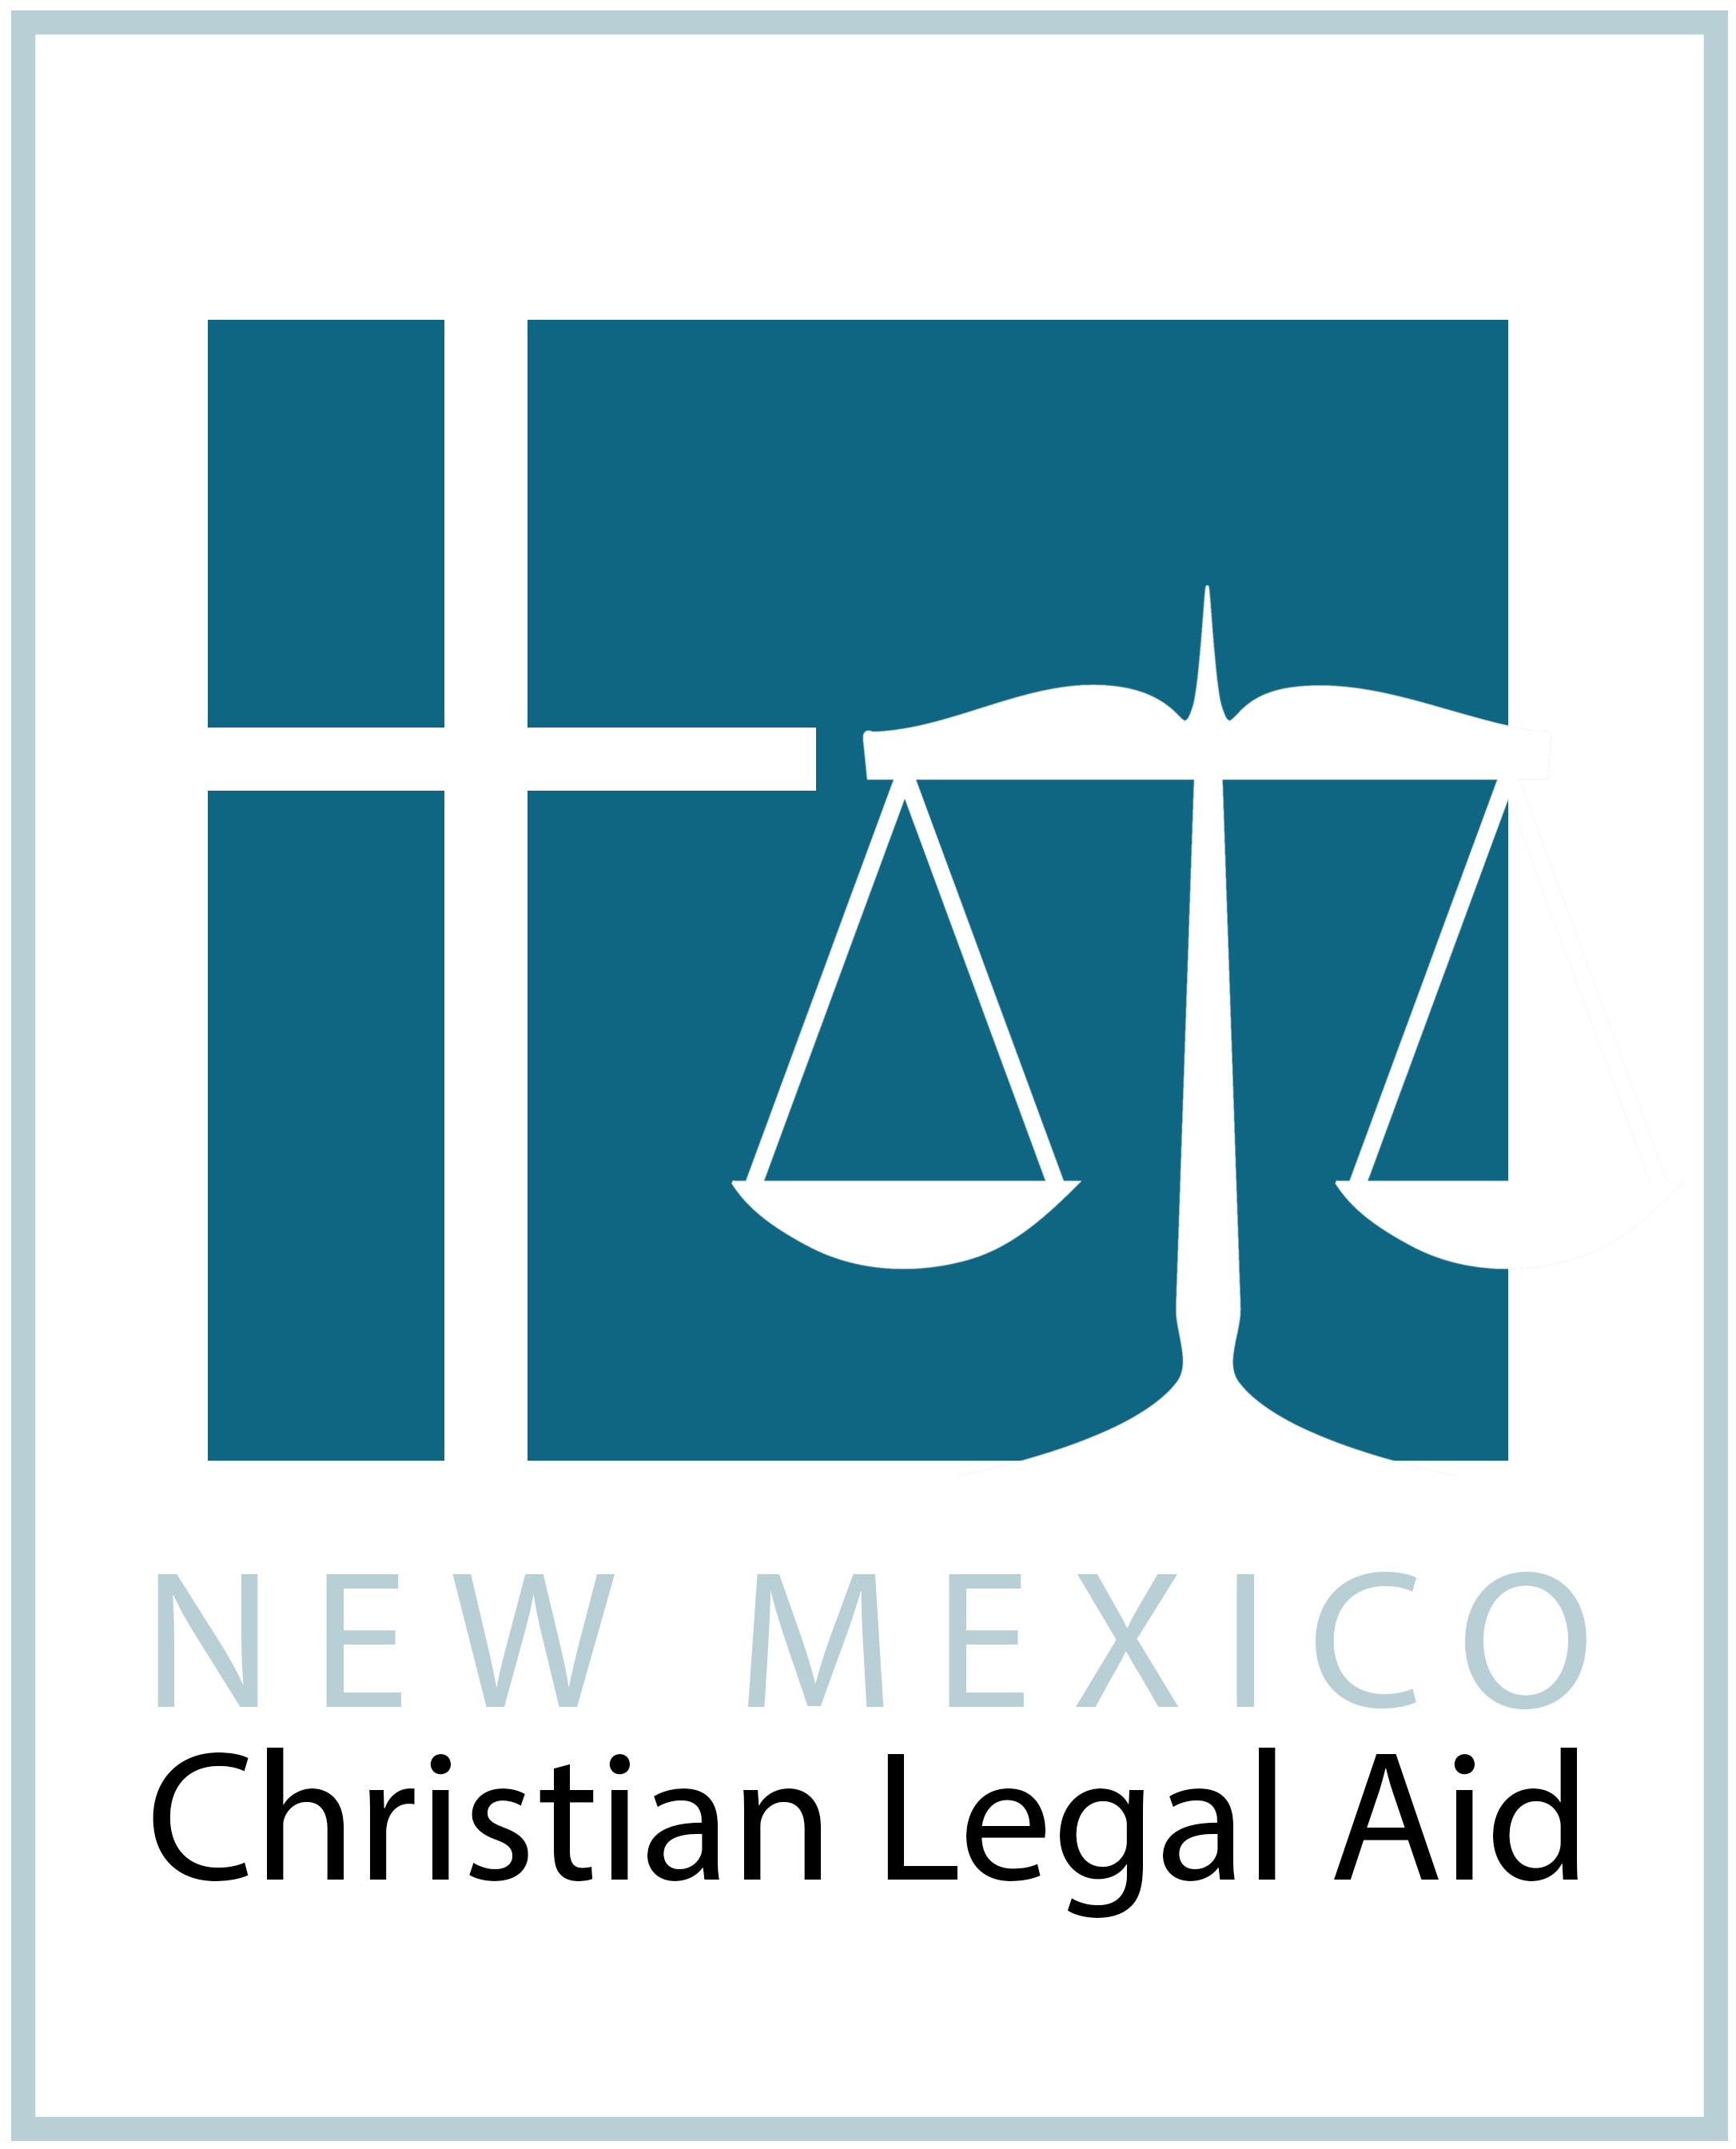 New Mexico Christian Legal Aid<br />Who We Are and What We Do